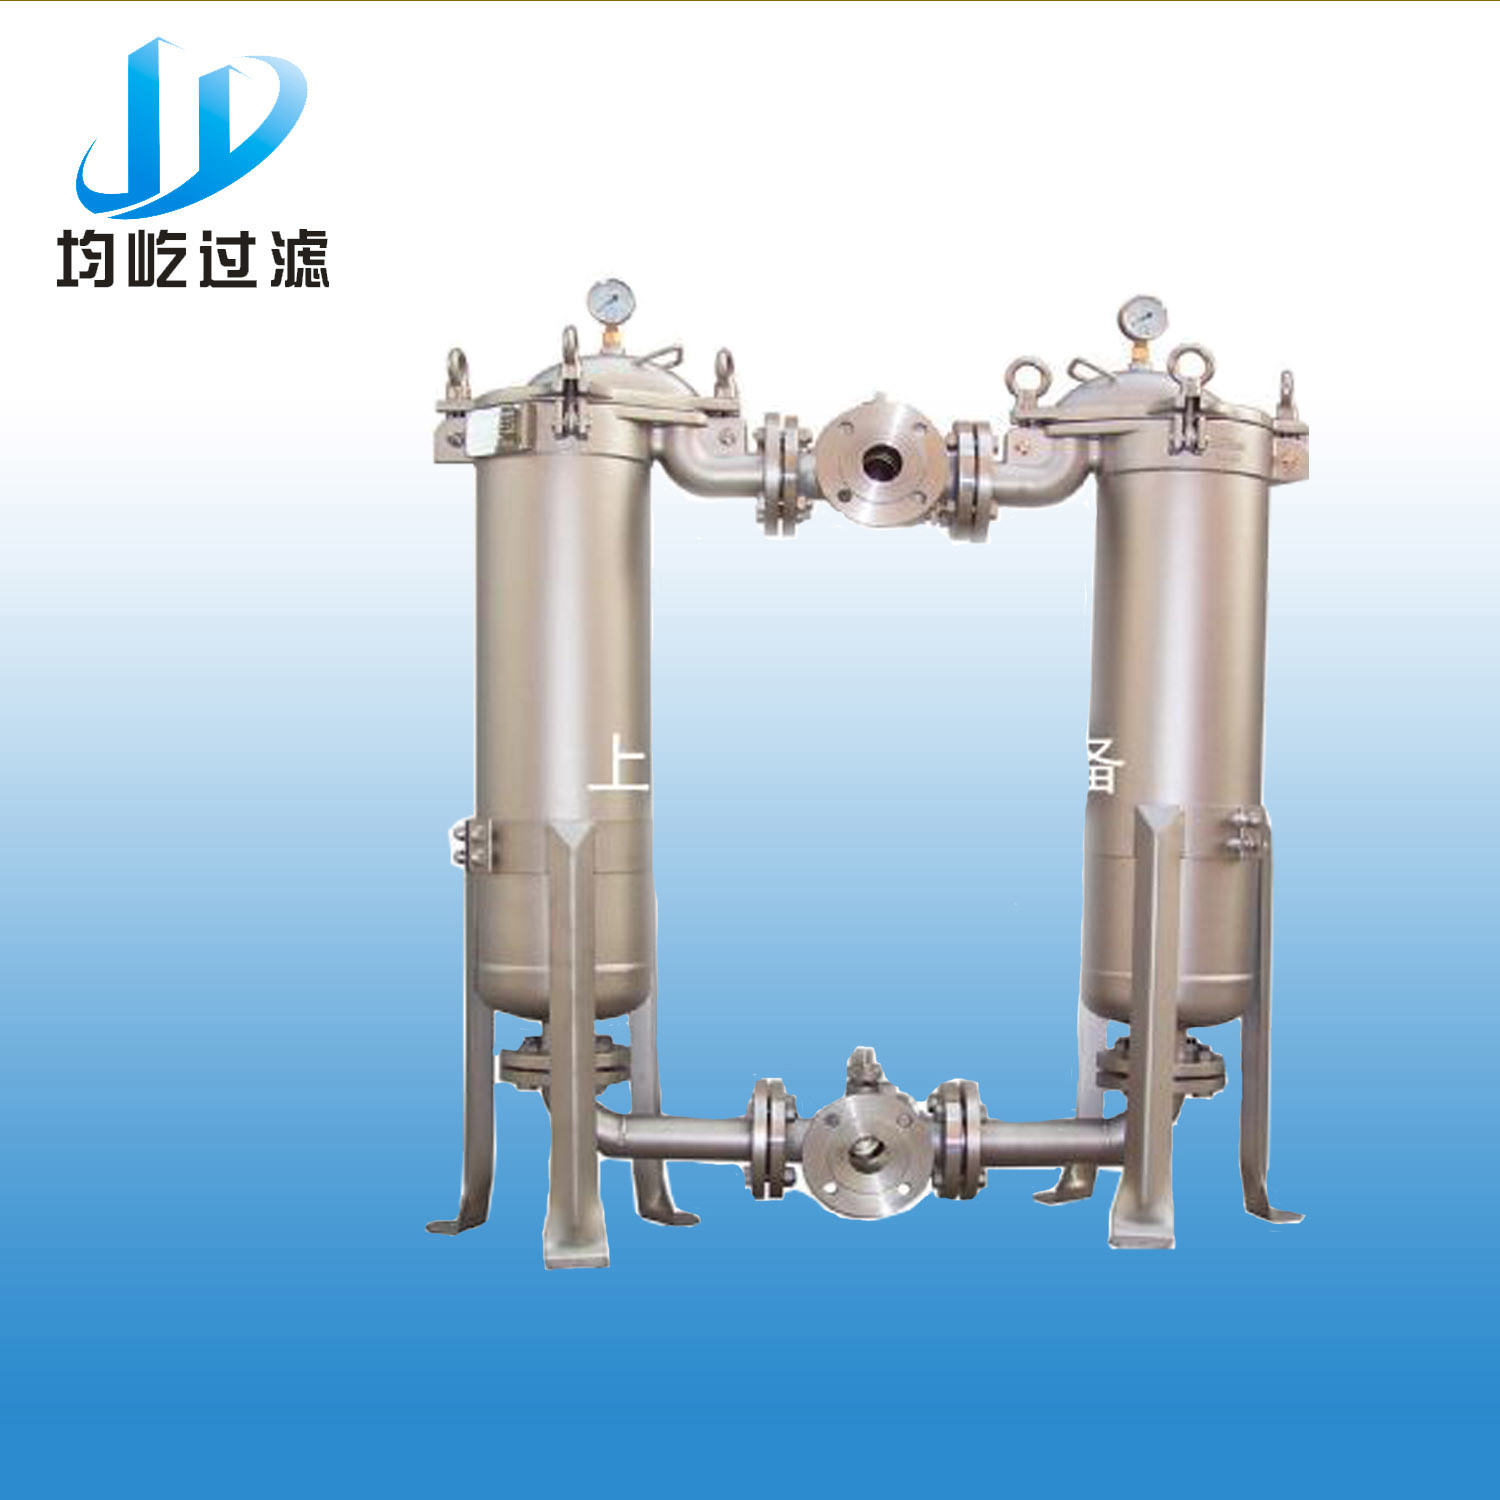 Parallel Connection 100% Stainless Steel Filter Equipment